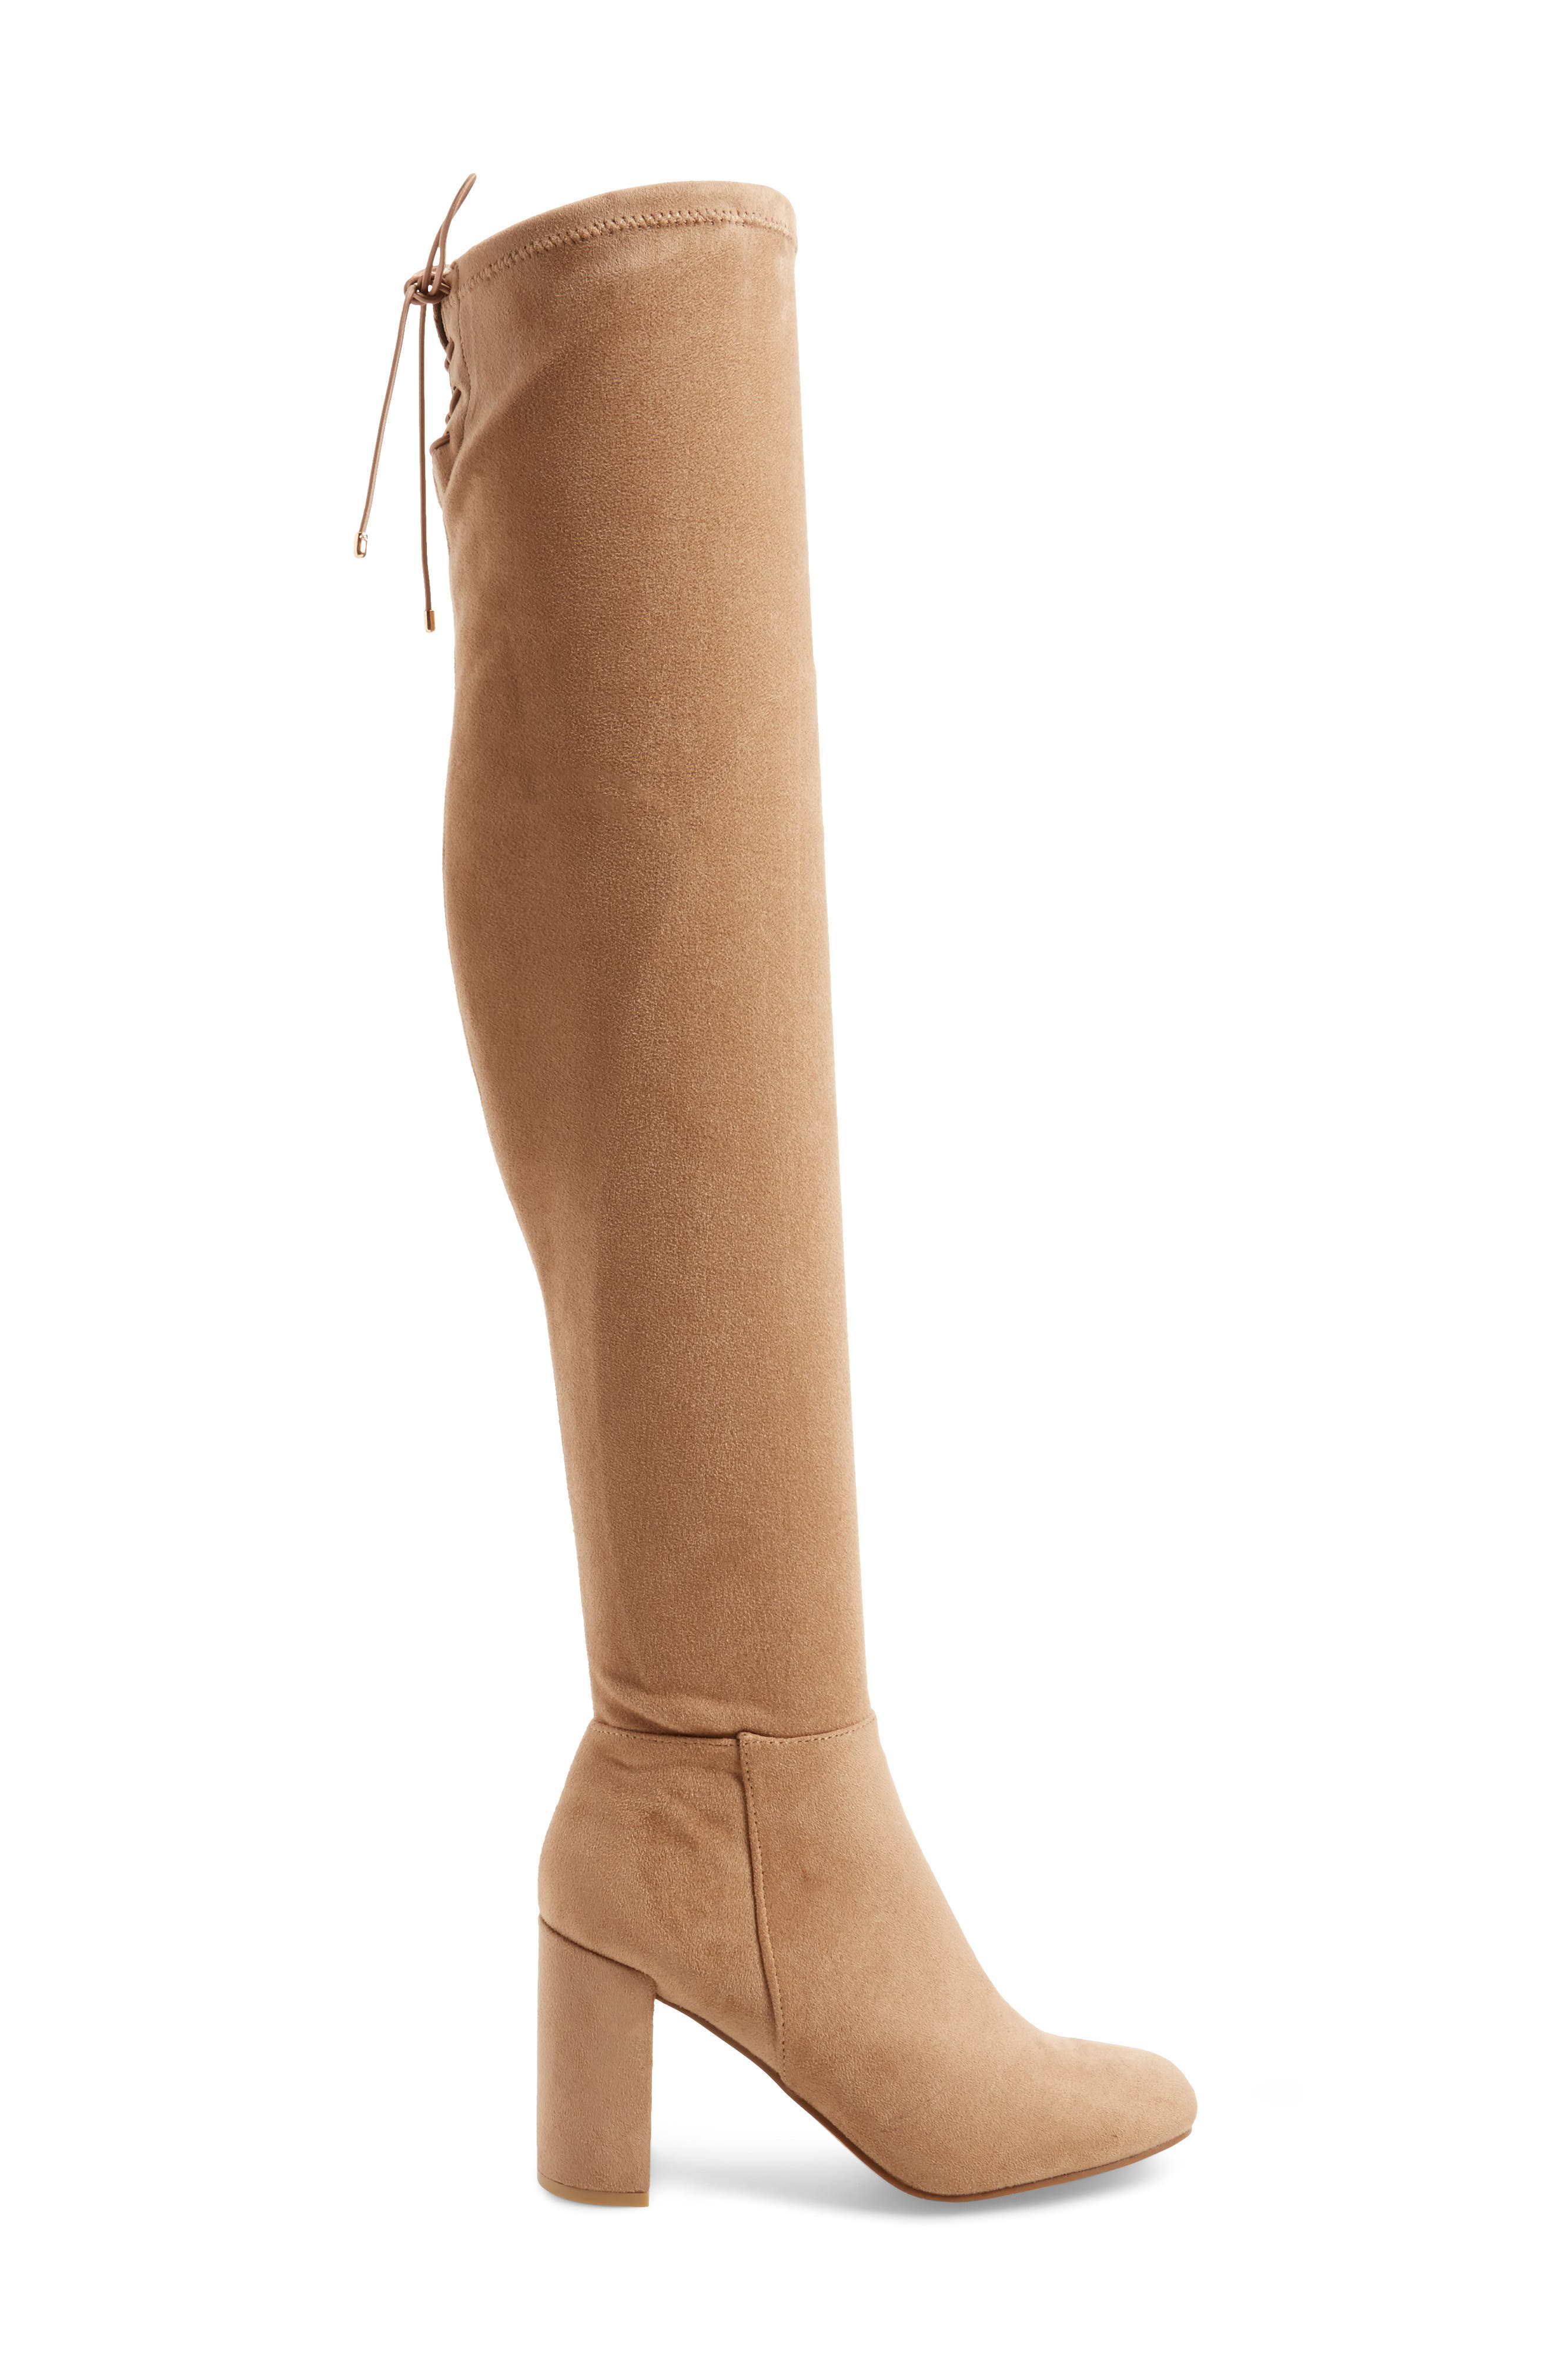 Krush Over the Knee Boot,                             Alternate thumbnail 3, color,                             Mink Suede